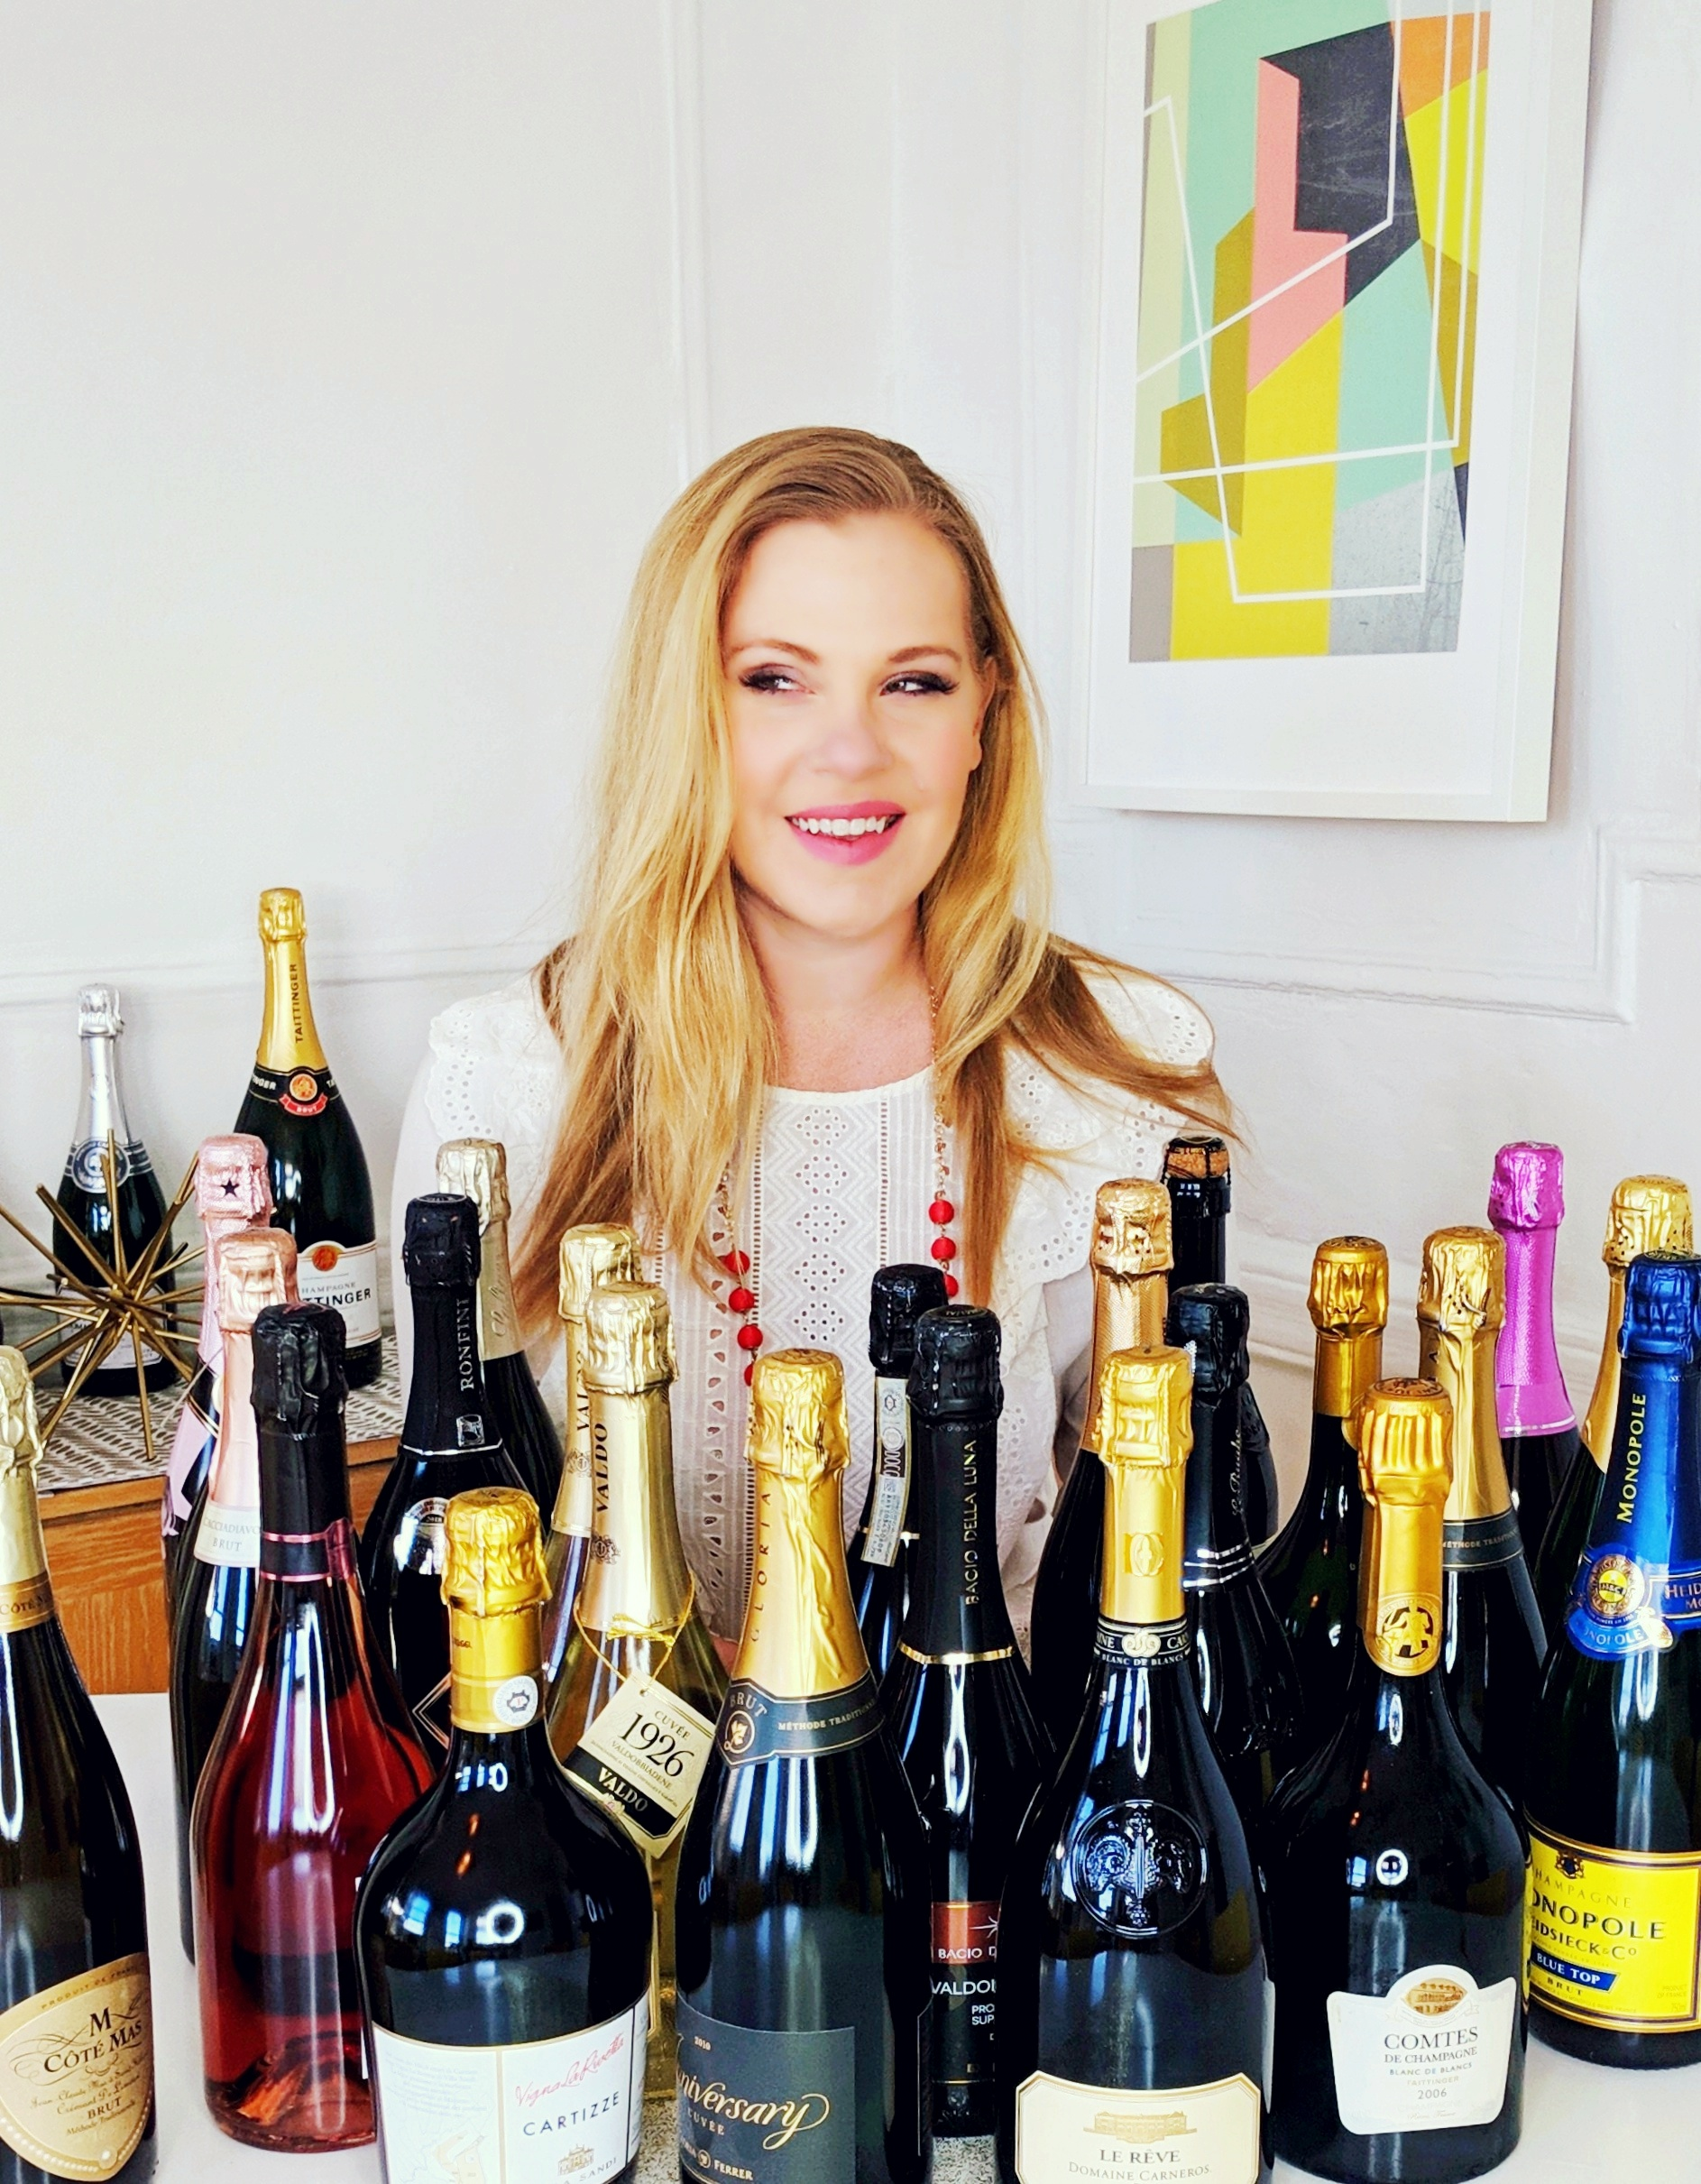 About Your Sommelier... - Before we go any further, let me introduce myself: I'm Sarah, the founder of The Lush Life, and I'm a sommelier, wine educator, and event consultant based in Brooklyn. I'm almost always in the mood for Beyoncé and almost always in the mood for Champagne. I believe that opening a bottle of wine is the cheapest and quickest way to travel the world without leaving your sofa, and that life is way too short not to drink wines that you absolutely love!If you ever wished you had a cool sommelier friend to help you navigate the complex world of wine, you're in the right place.I'm so glad you're here! Some articles to get you started are below... cheers!